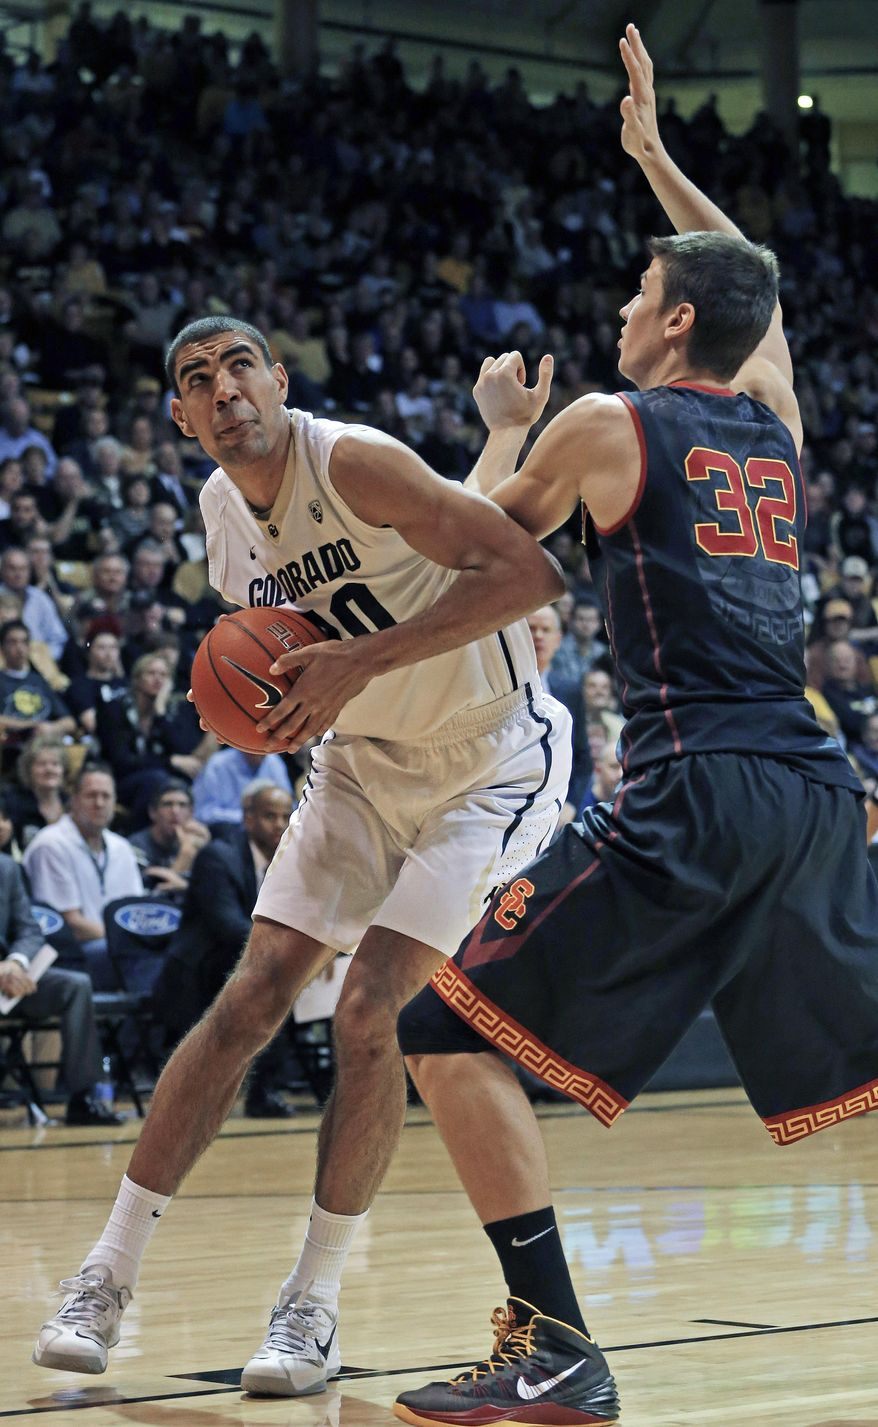 Colorado's Josh Scott looks for a shot as Southern California's Nikola Jovanovic defends during the second half of an NCAA college basketball game in Boulder, Colo., Saturday, Jan. 18, 2014. Colorado won 83-62. (AP Photo/Brennan Linsley)